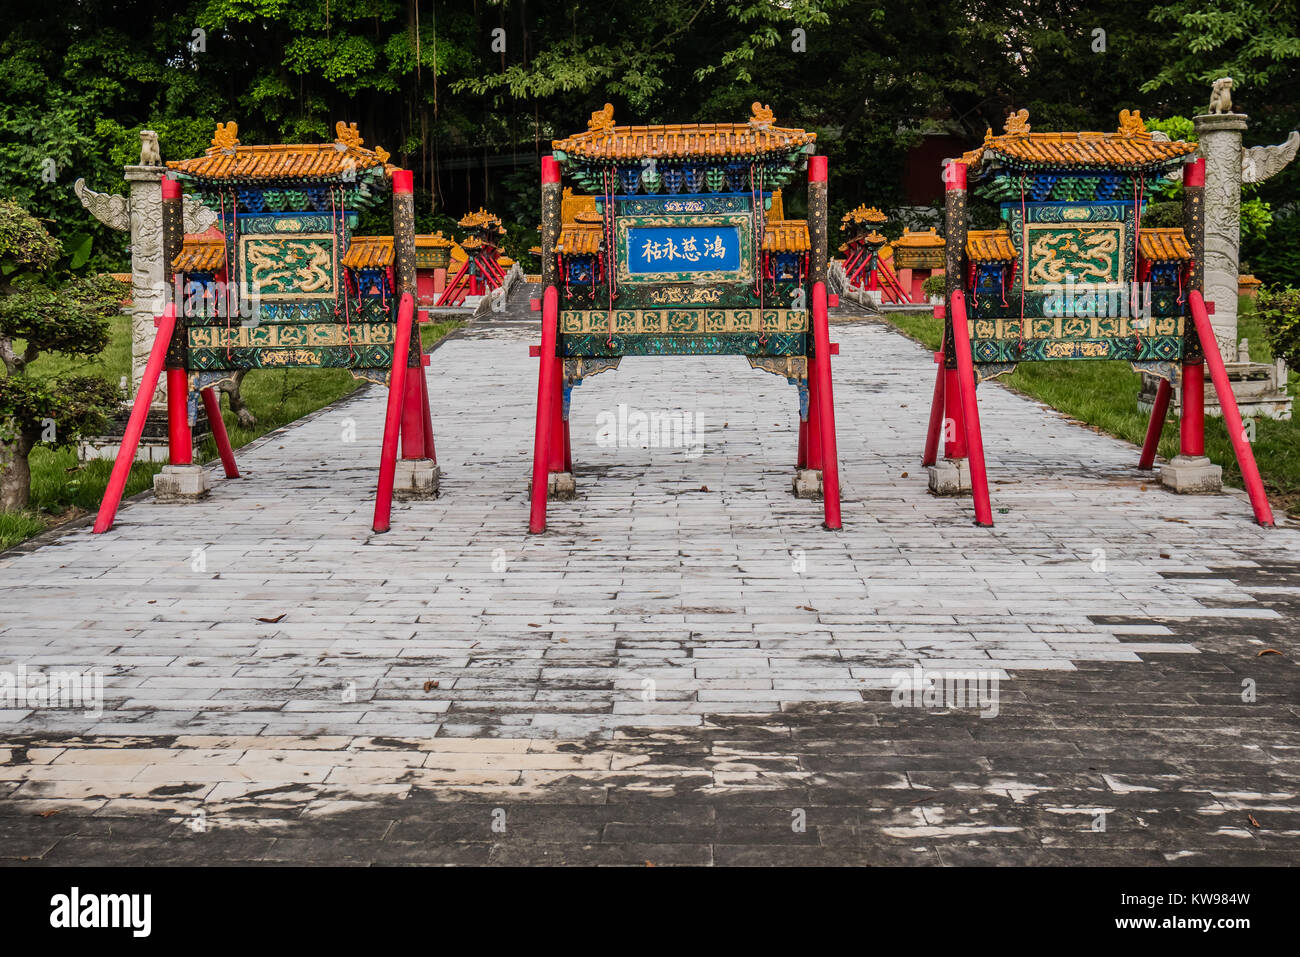 chinese landmark miniature version bounteous mercy forever shines - Stock Image